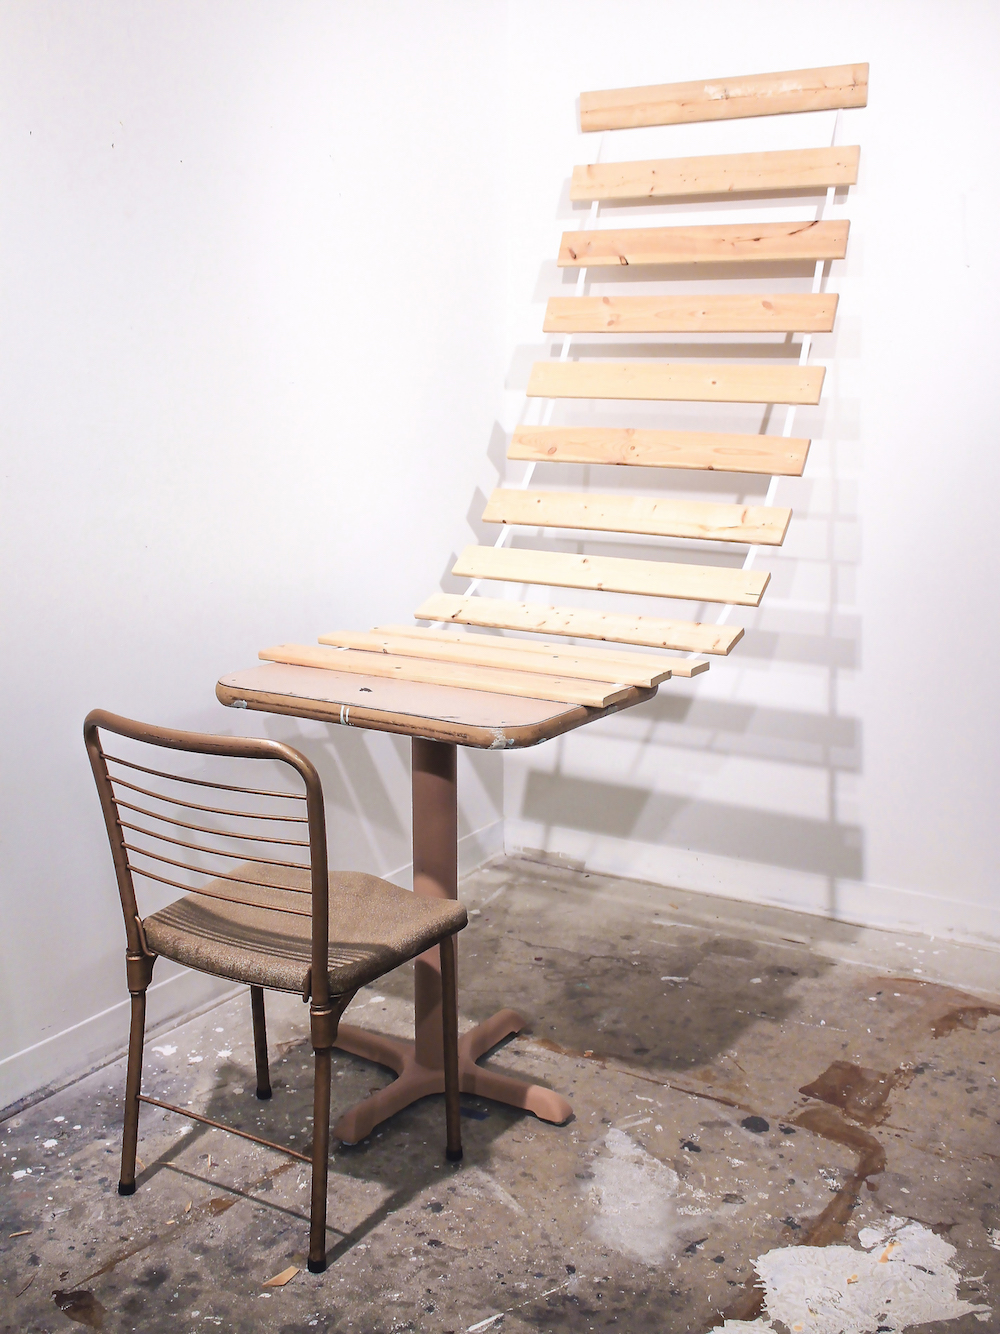 """Learning Curve"" by Shane Smith, Chair and table and bed slats and nails, 17x3x5 ft, 2016, NFS"